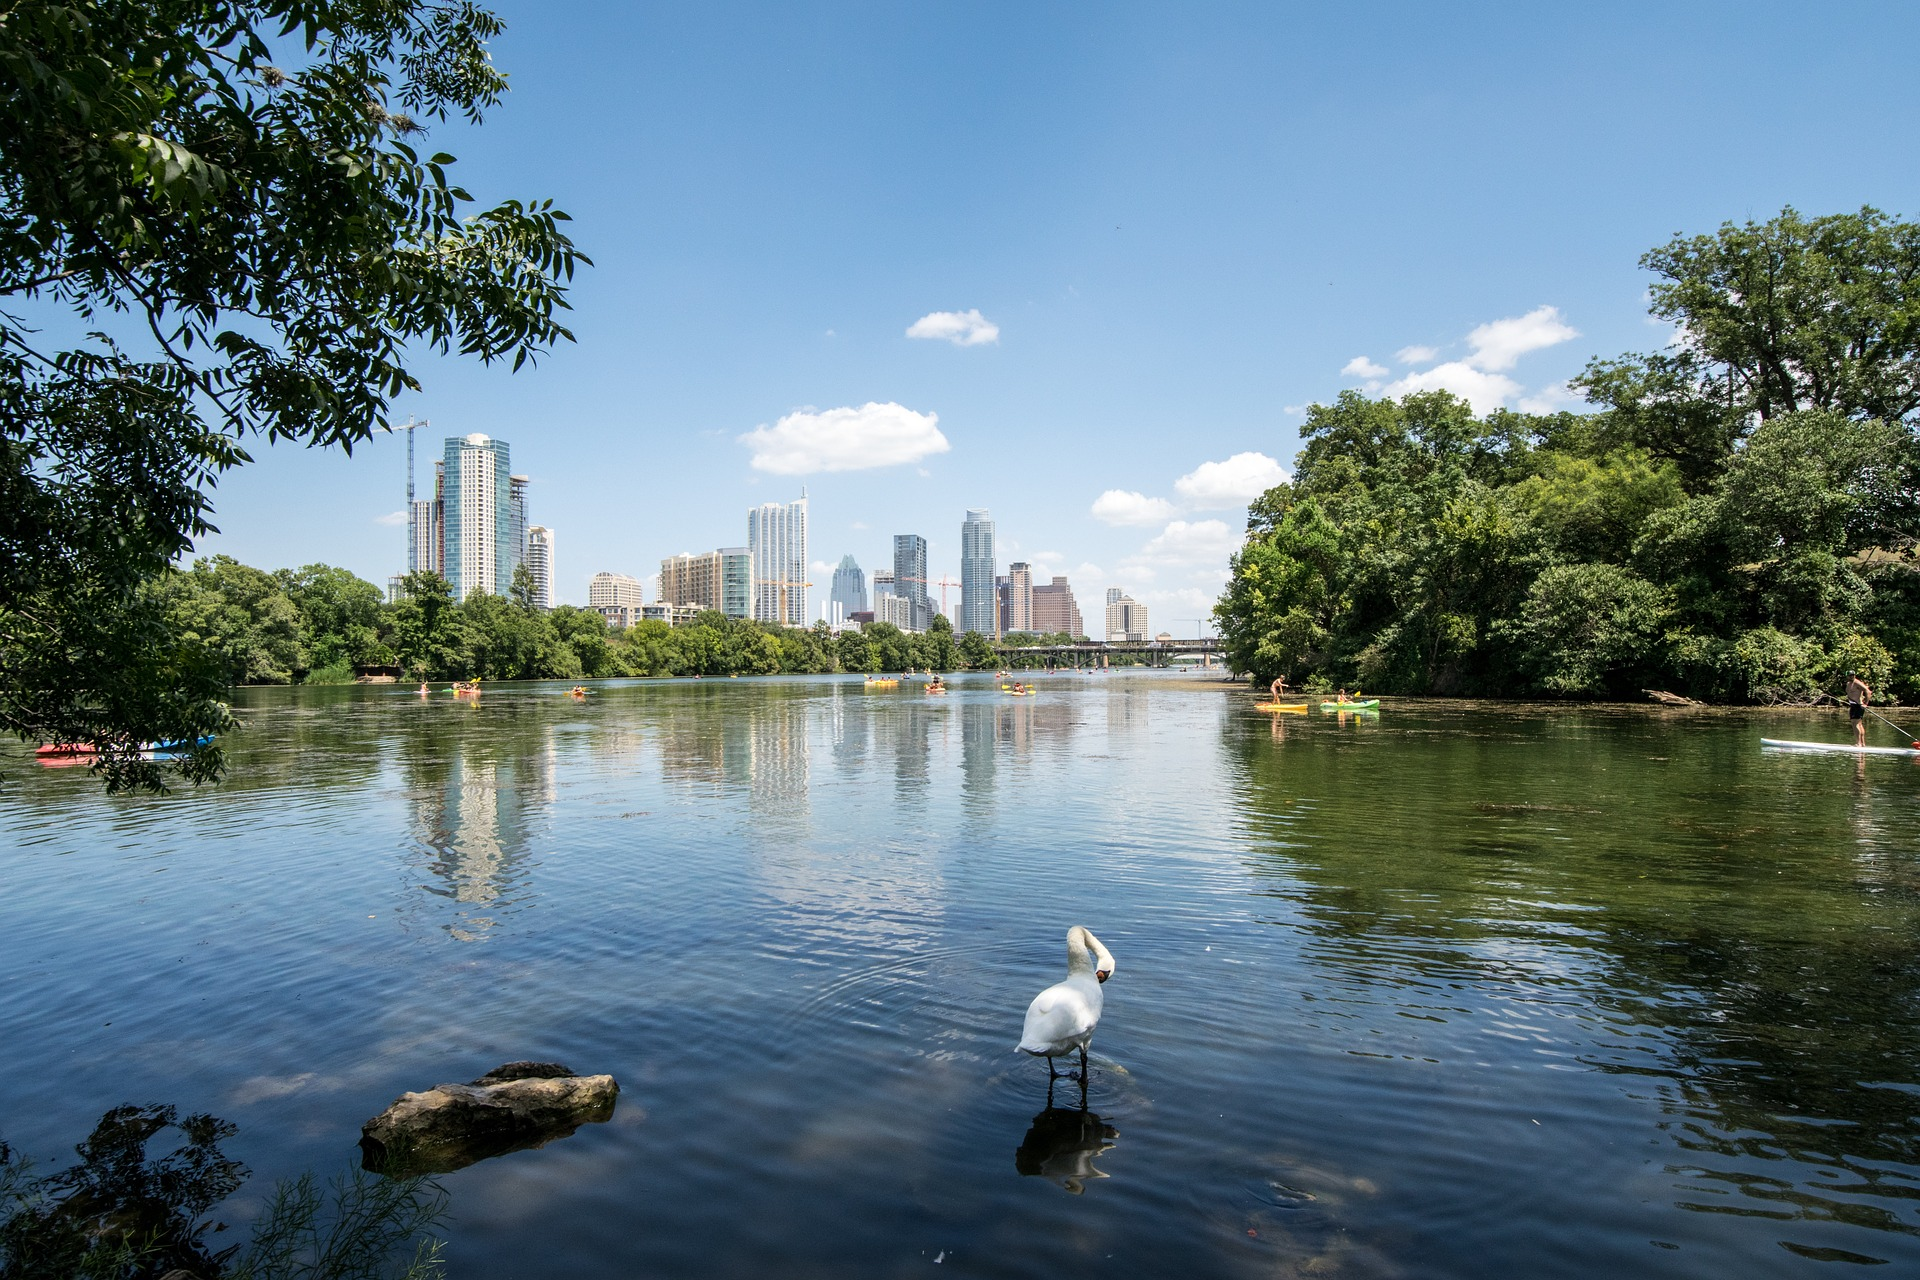 Image of the Austin Texas downtown skyline taken from across a small lake | TAB Bank